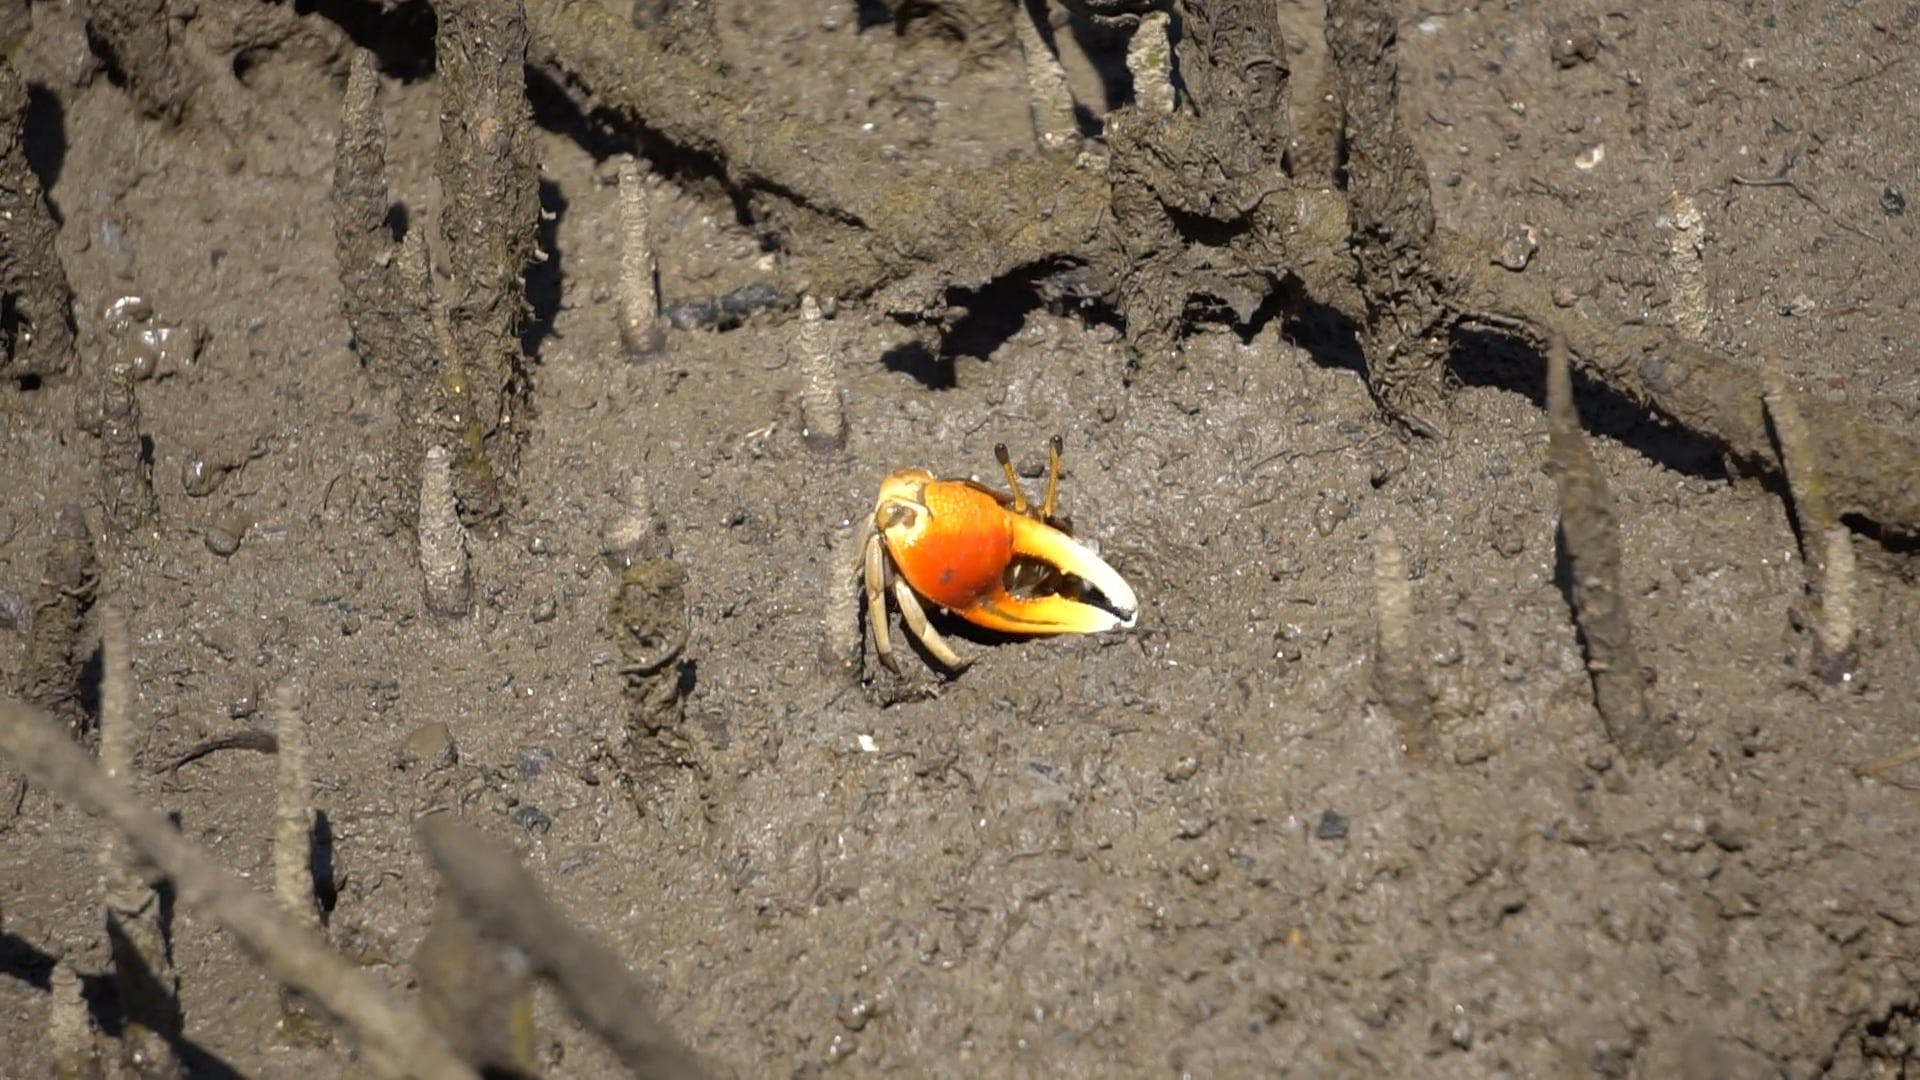 Crab Coming Out From Sand